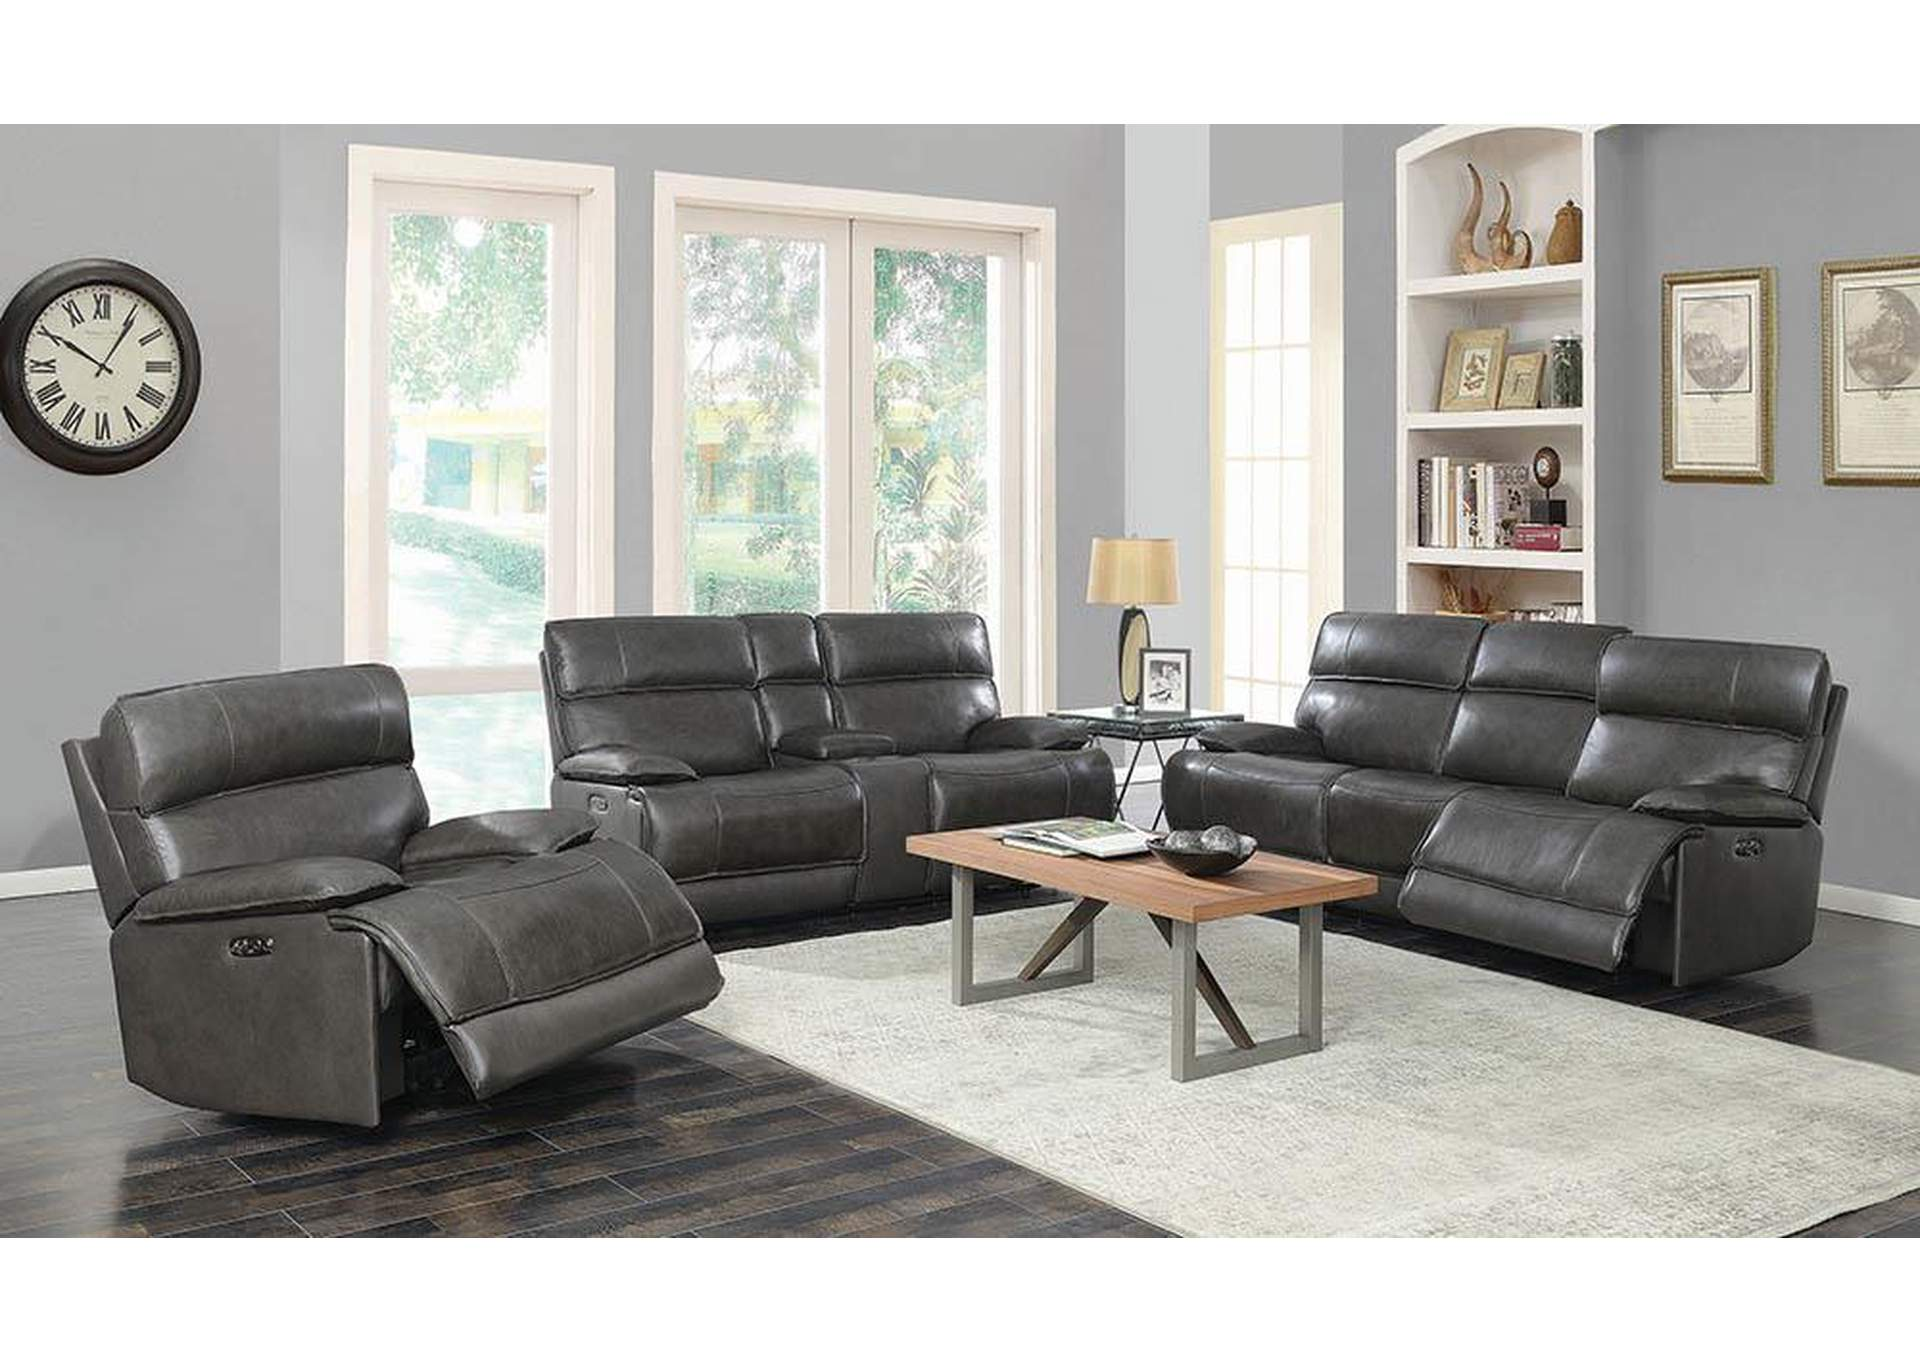 Stanford Charcoal Power Reclining Sofa w/Bluetooth Remote Connectivity,Coaster Furniture